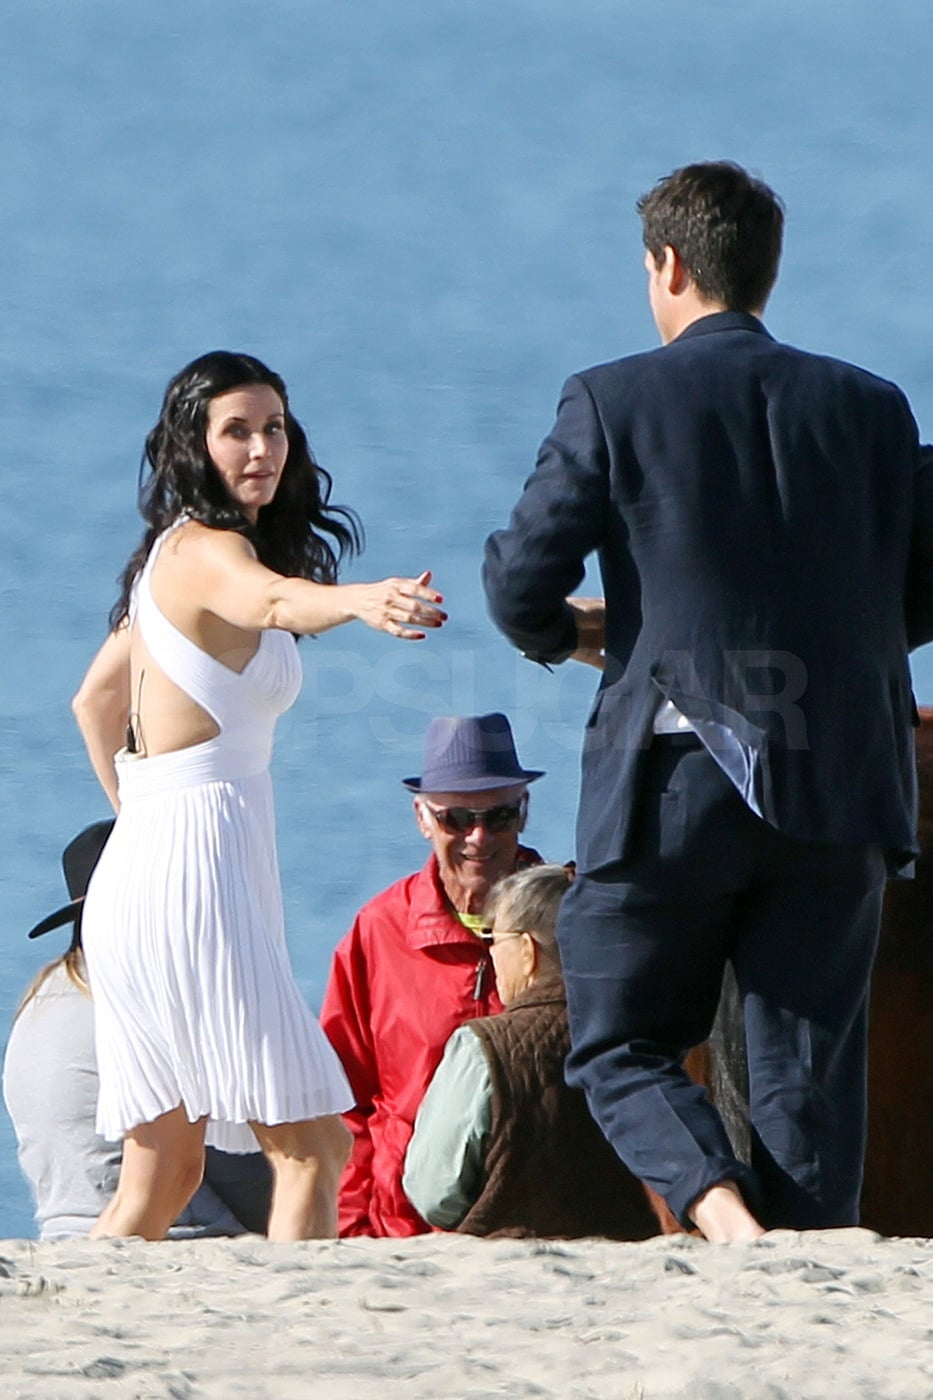 Courteney held out her hand for Josh.